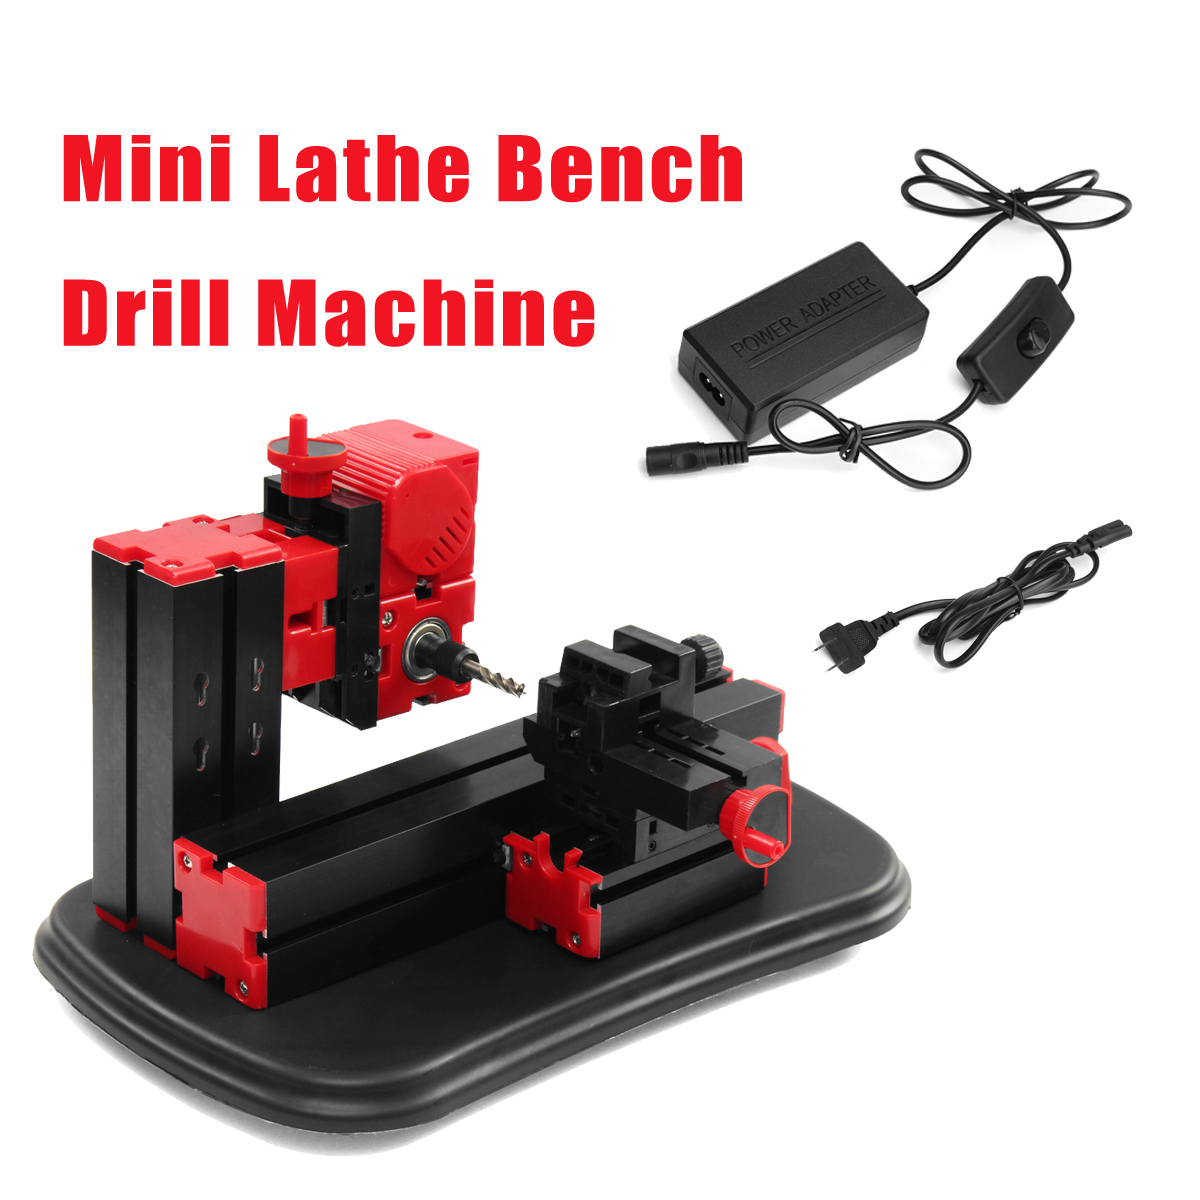 100-240V Mini Lathe Milling Machine Bench Drill Machine Electric Drill DIY Woodworking Power Tool недорго, оригинальная цена